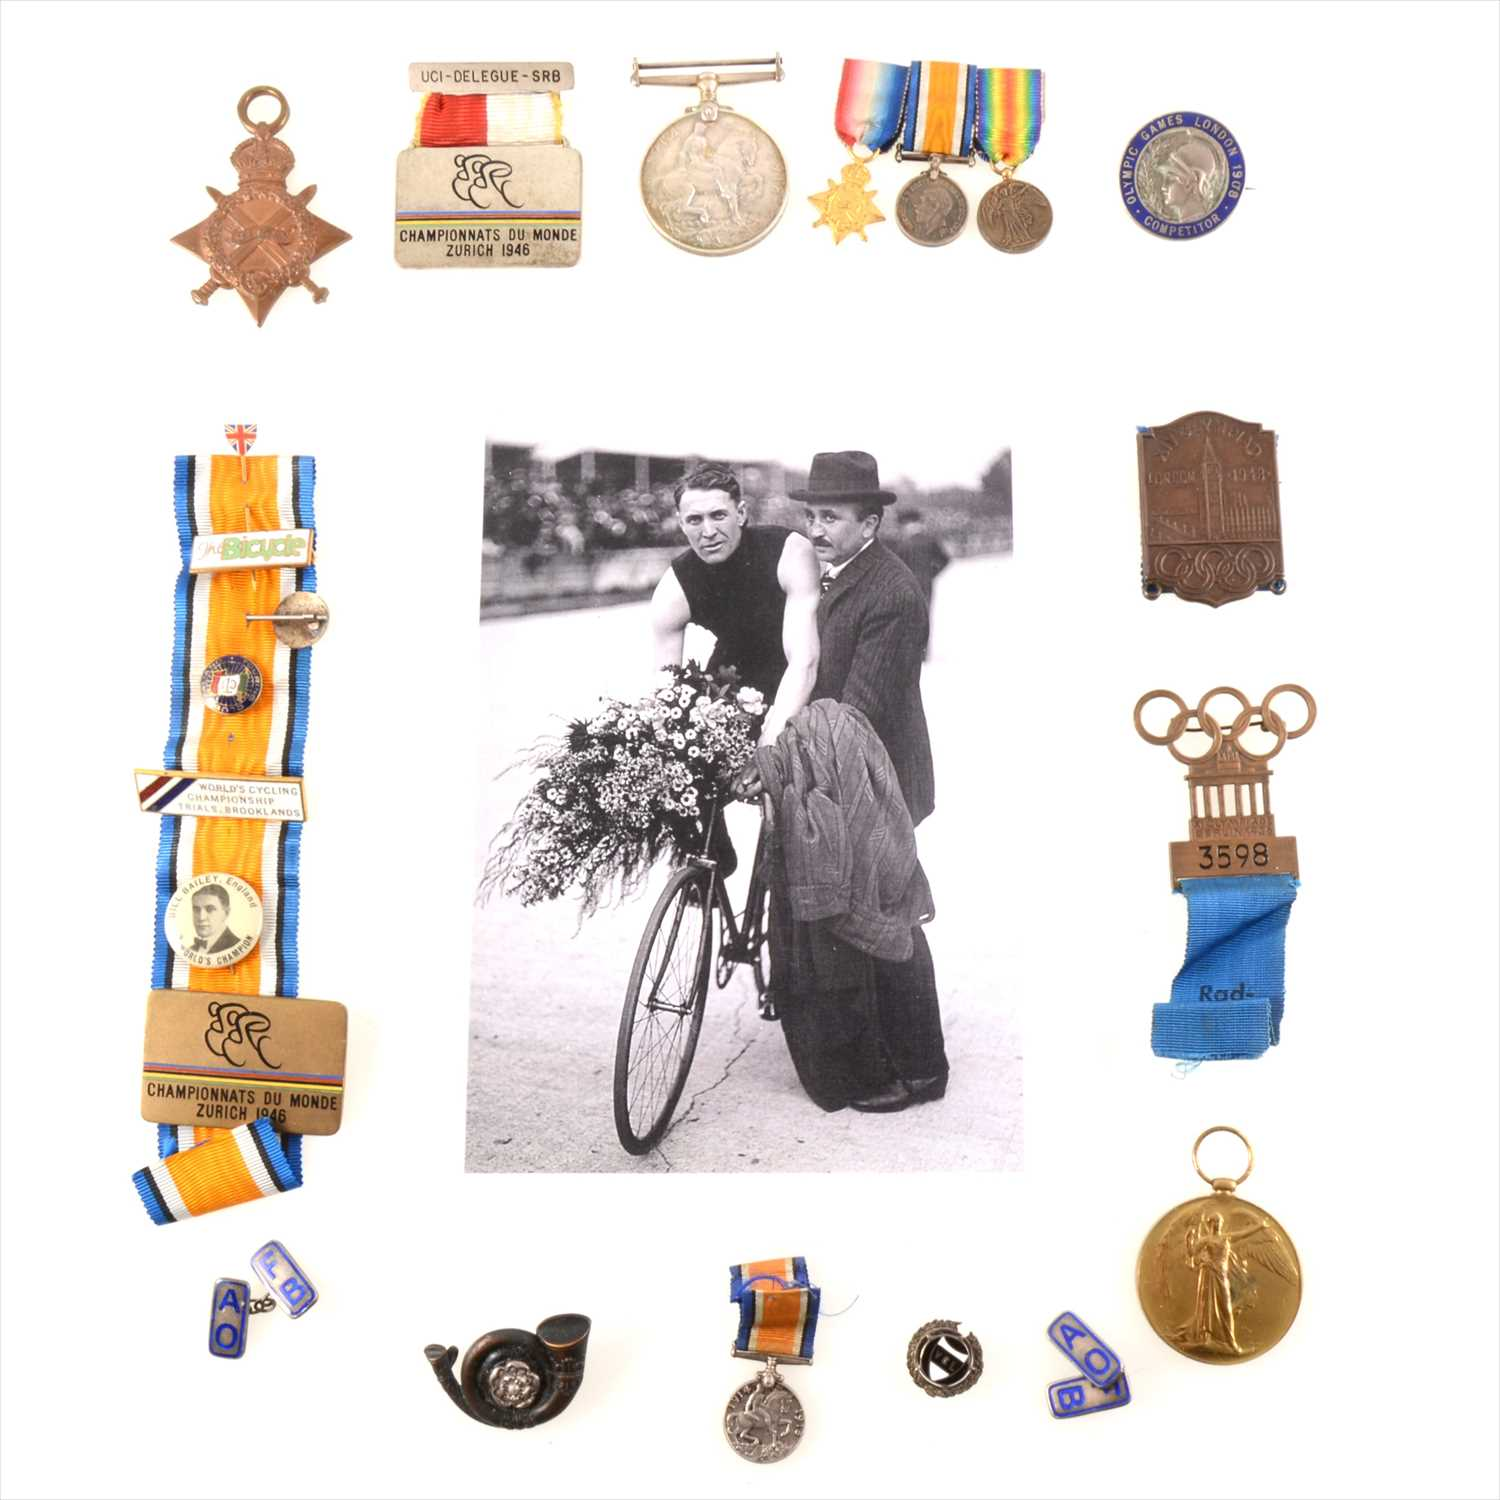 "179 - The London 1908 Olympic Games Competitor badge of William ""Bill"" Bailey, Sprint Cycling World Champion 1909-1911"